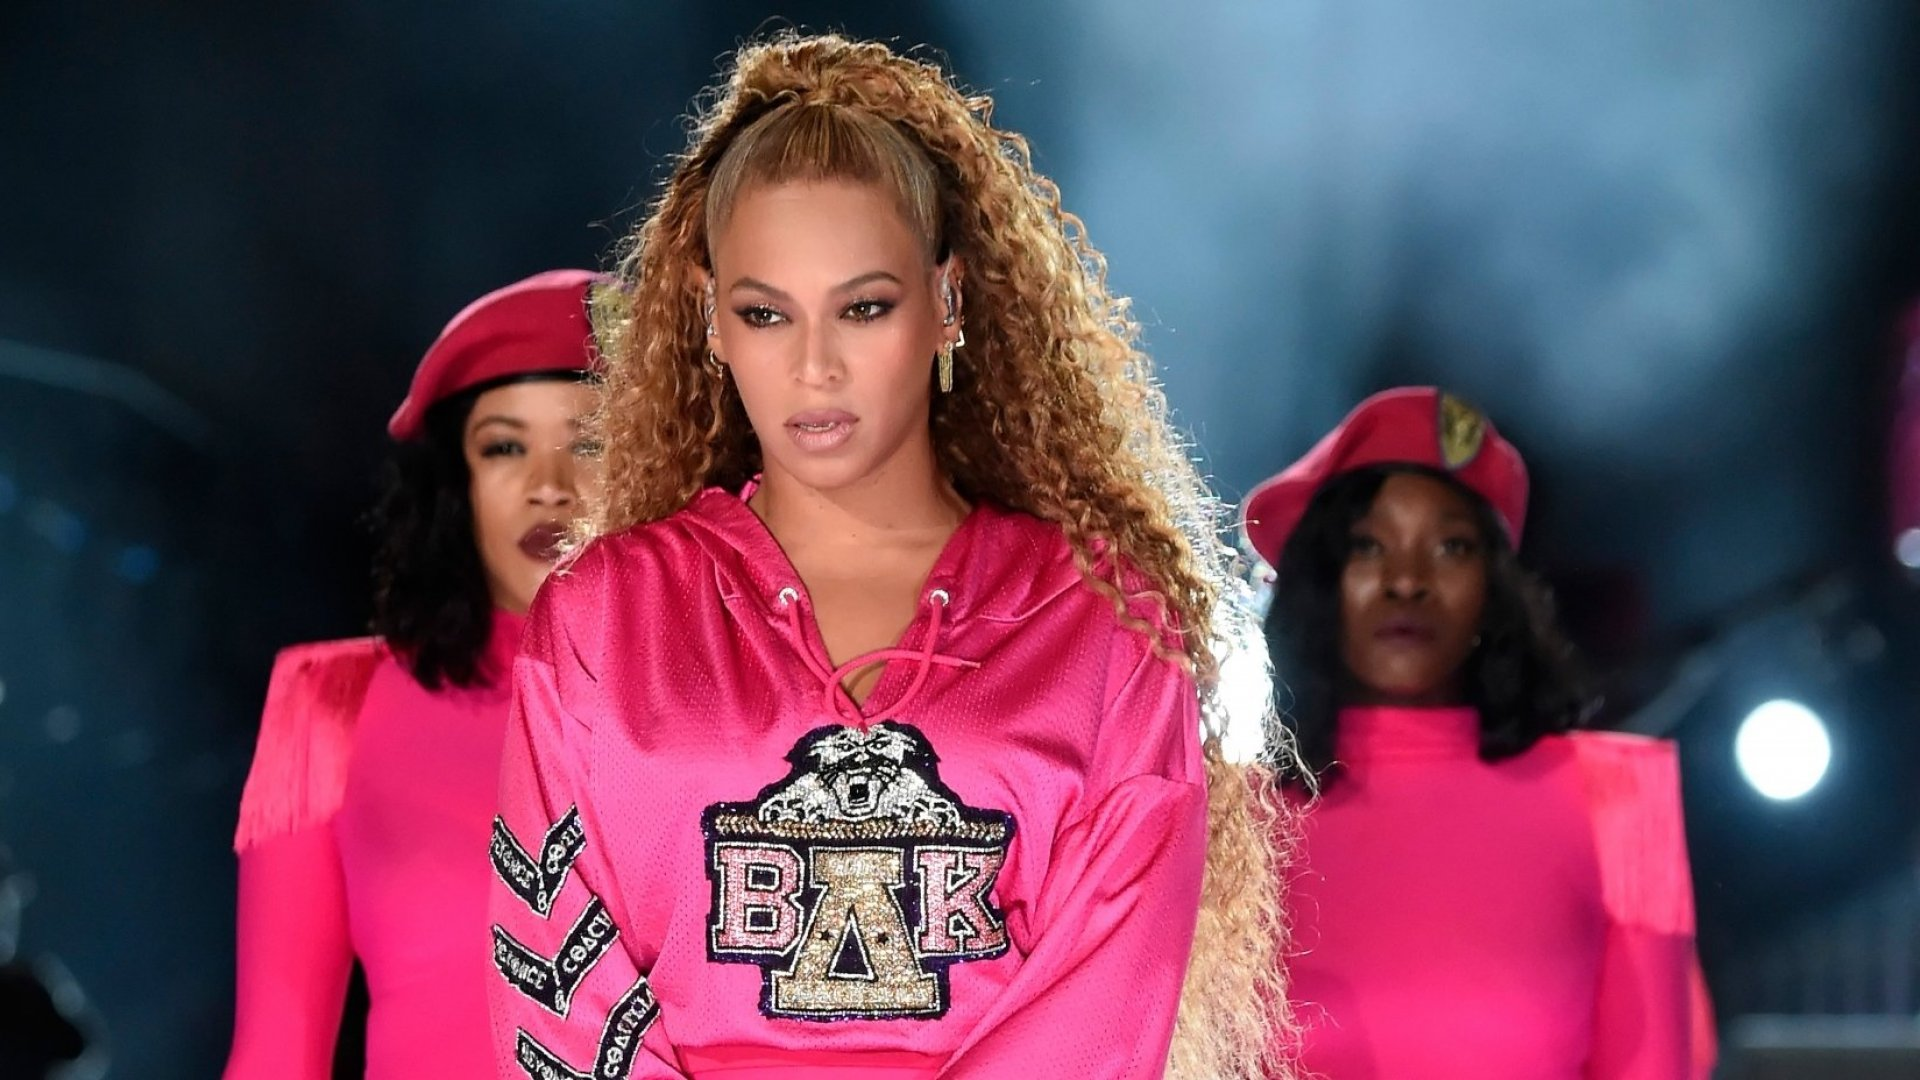 Beyonce Fans Are Going Crazy Over the New Layer She Added to Her Customer Experience. The Simple Strategy Every Business Can Implement